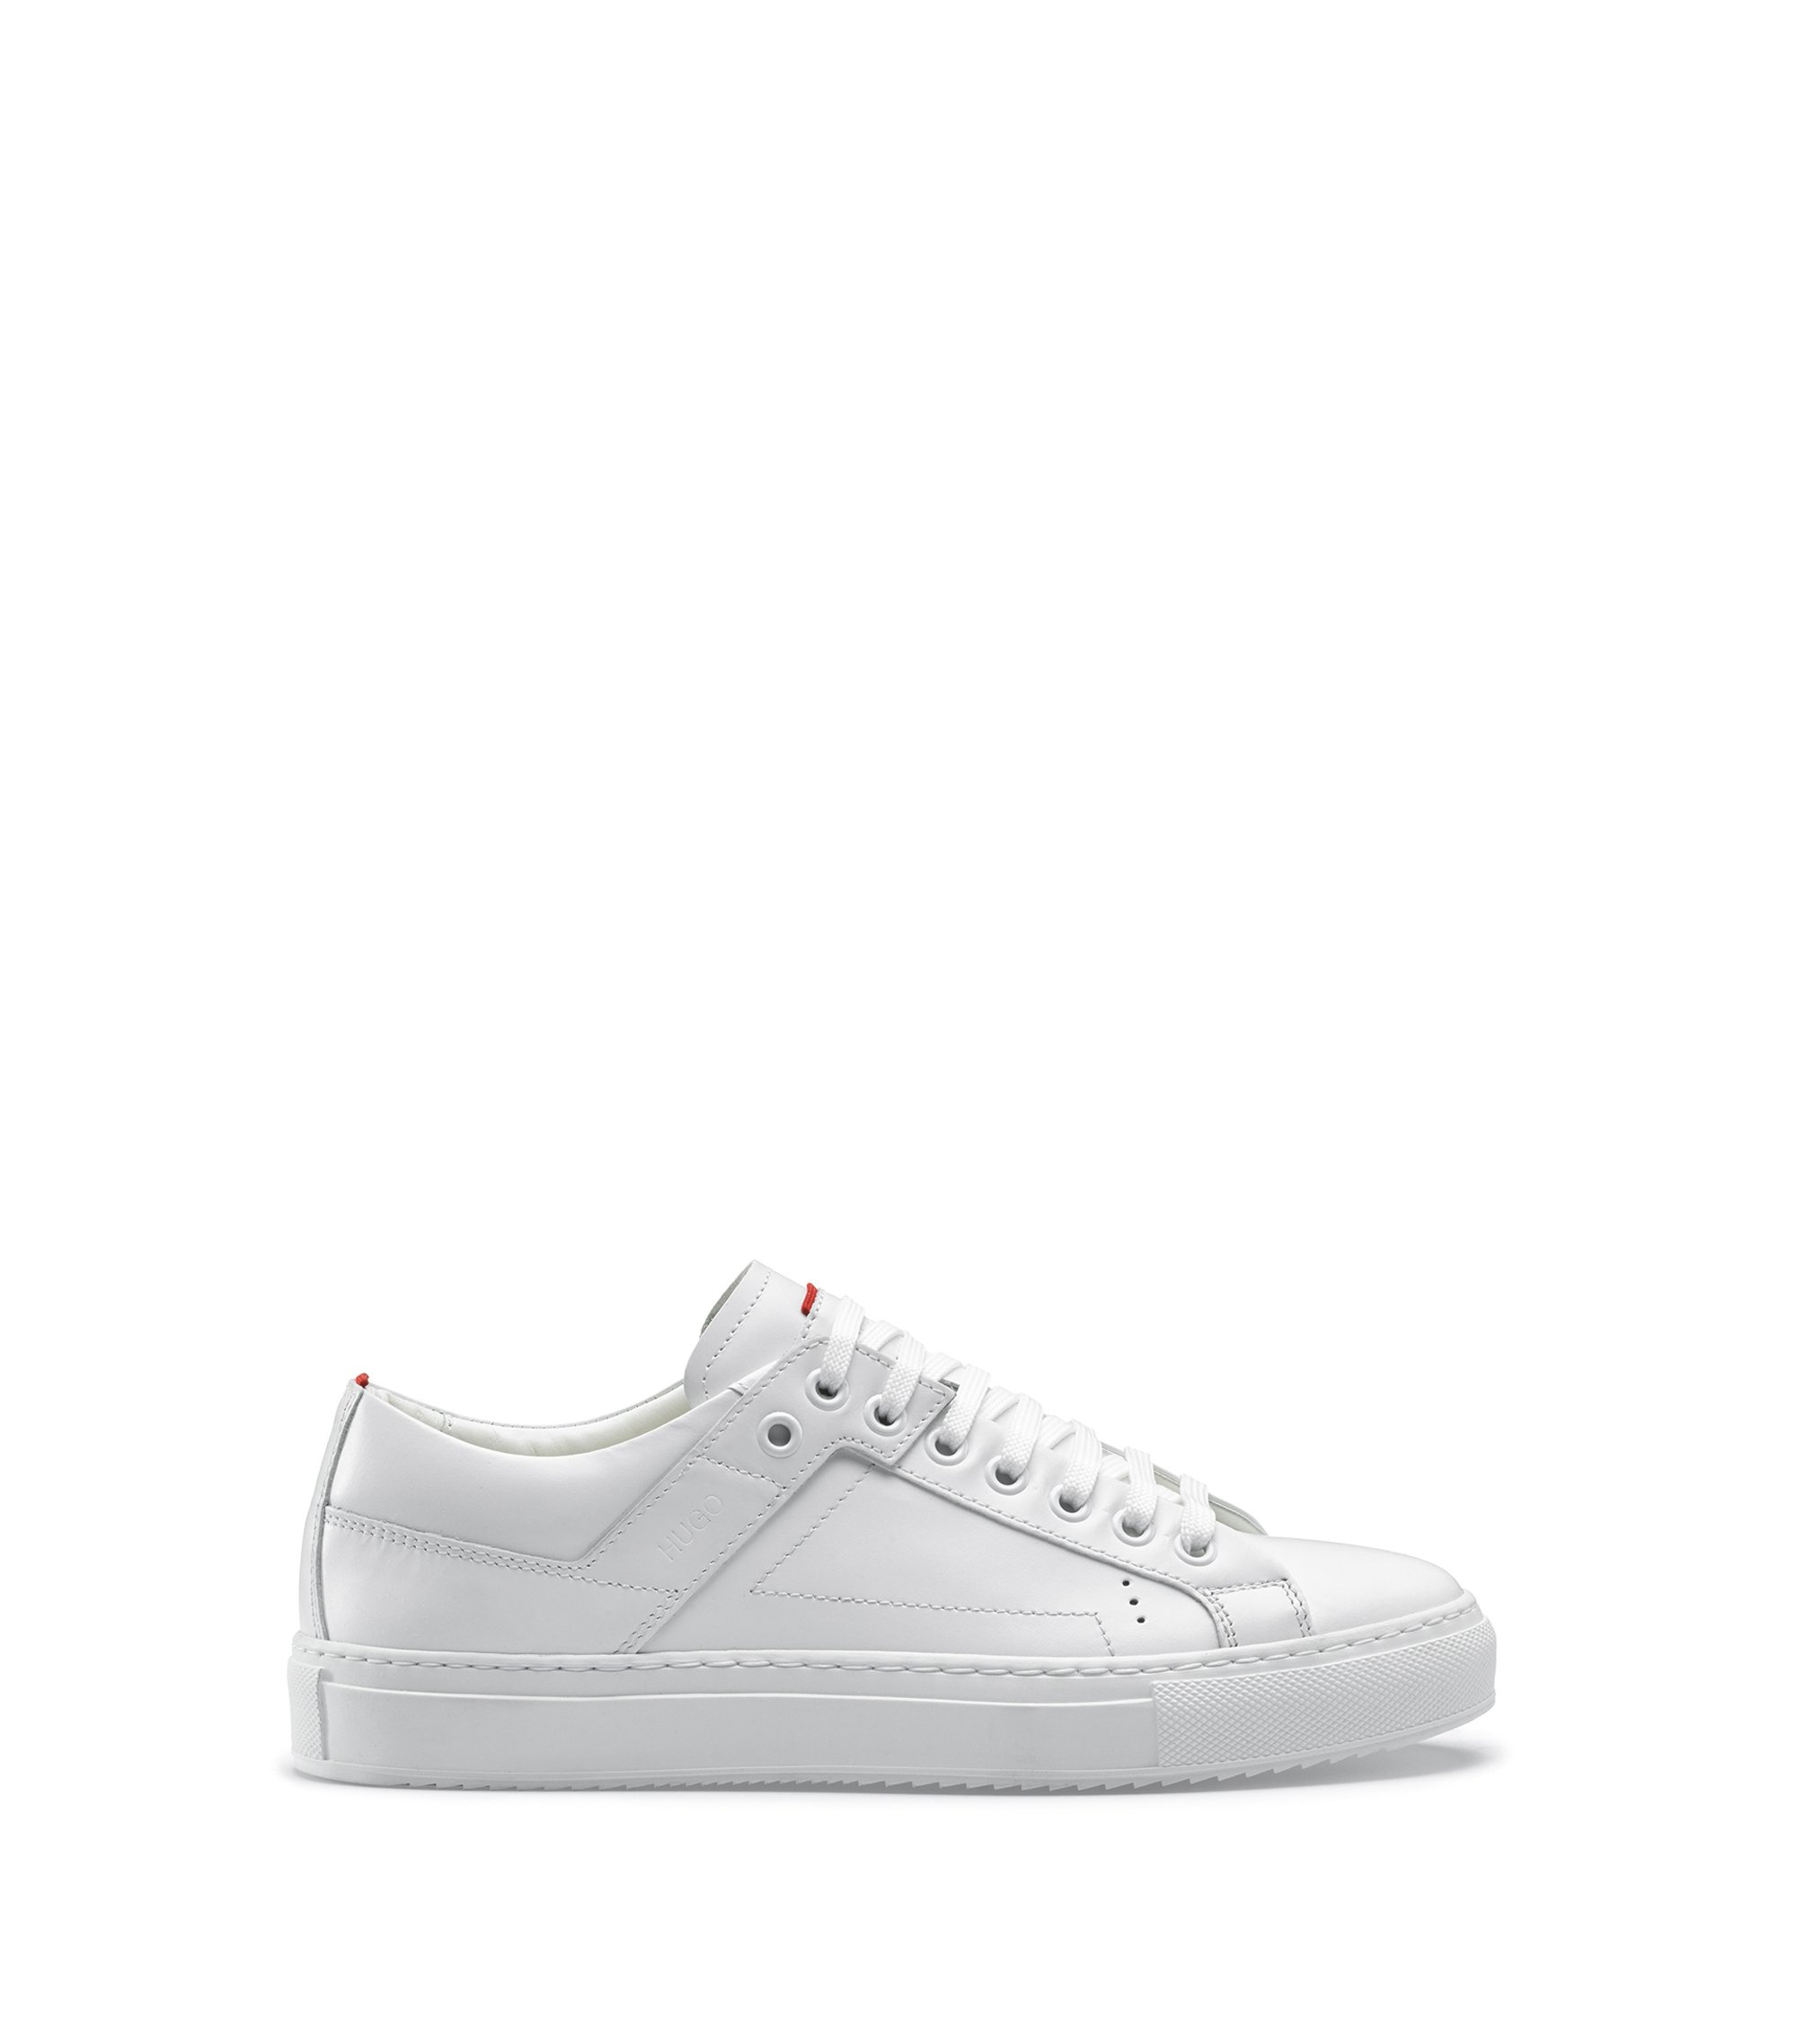 Low-top lace-up trainers in tumbled leather, White